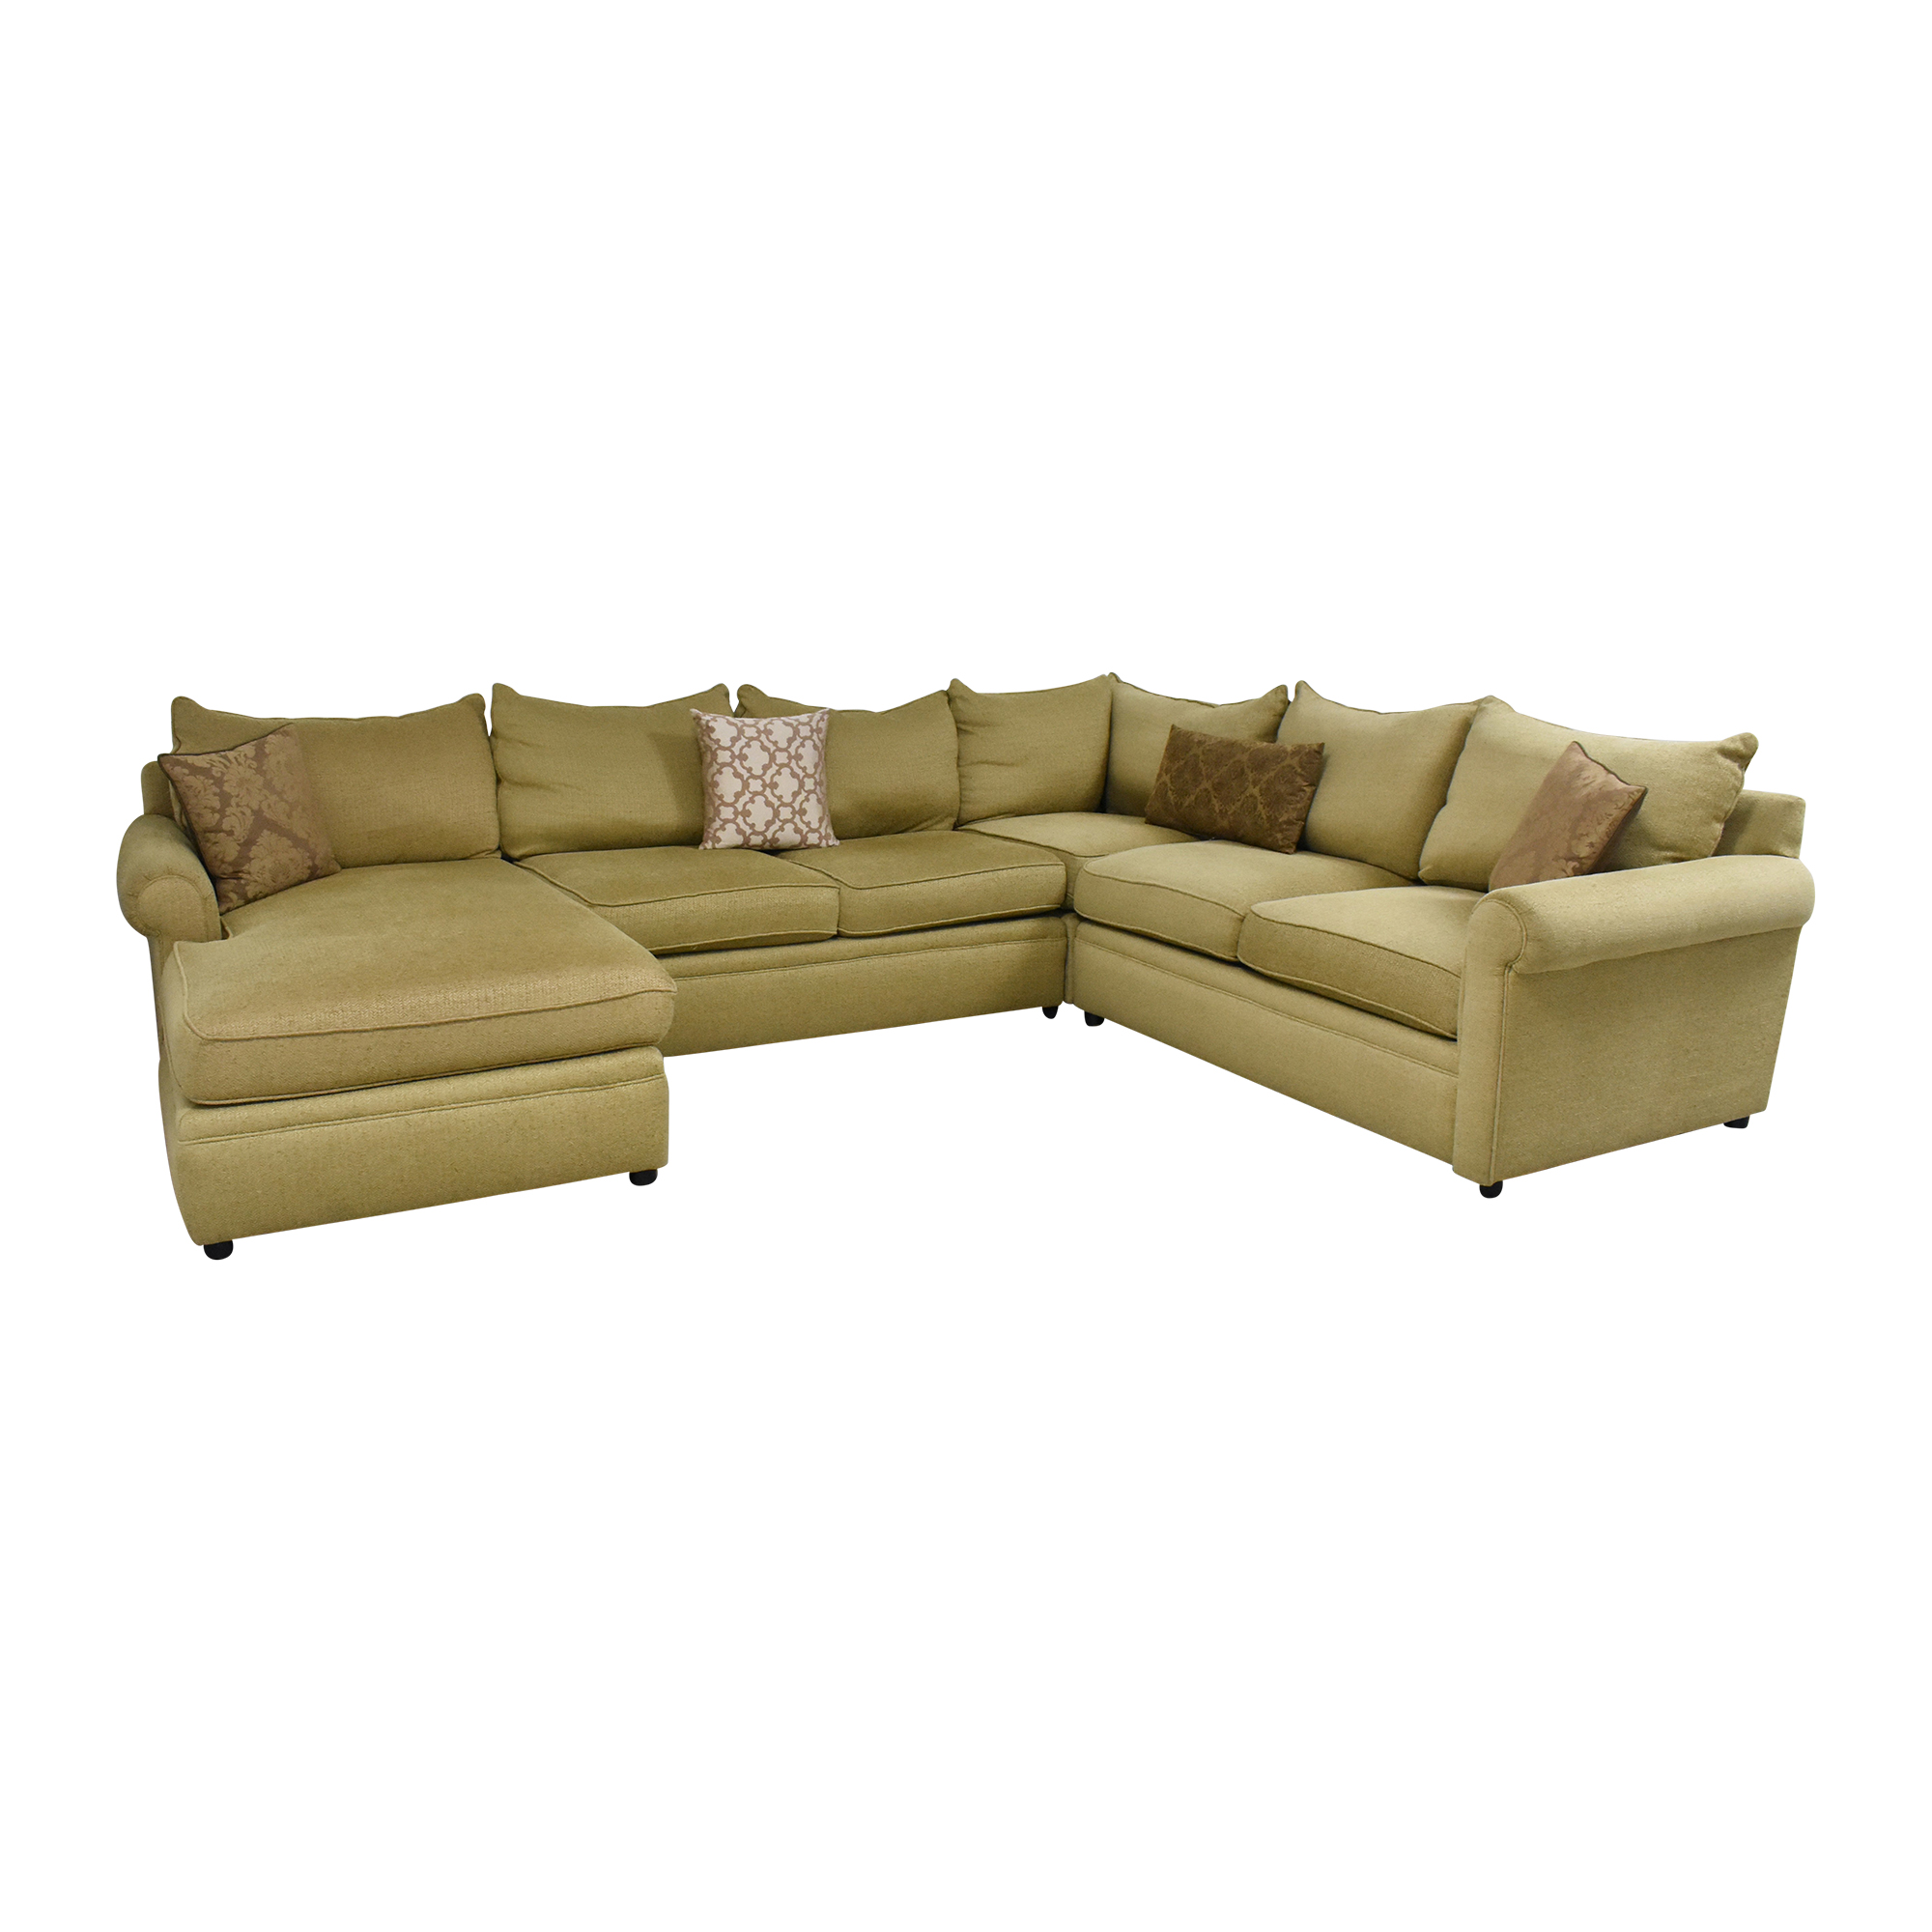 Domain Home Domain Home Sectional Sofa with Chaise ma